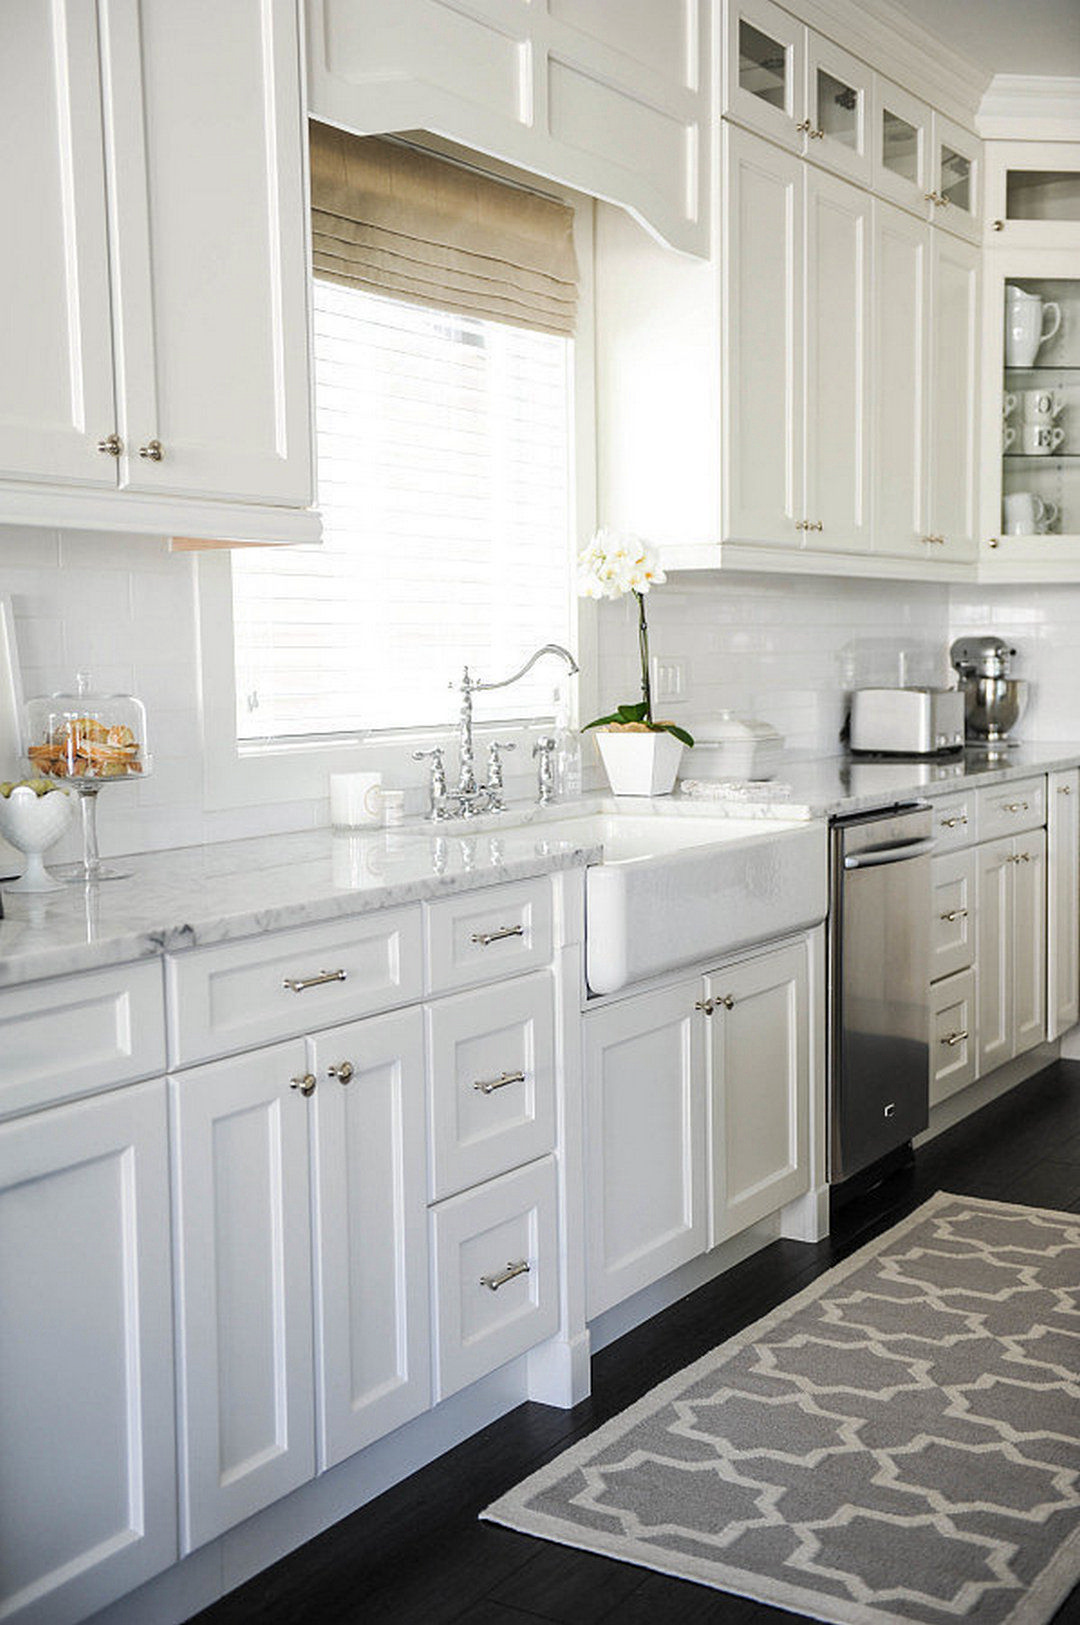 Great Kitchen Cabinets Why White Kitchen Interior Is Still Great For 2019